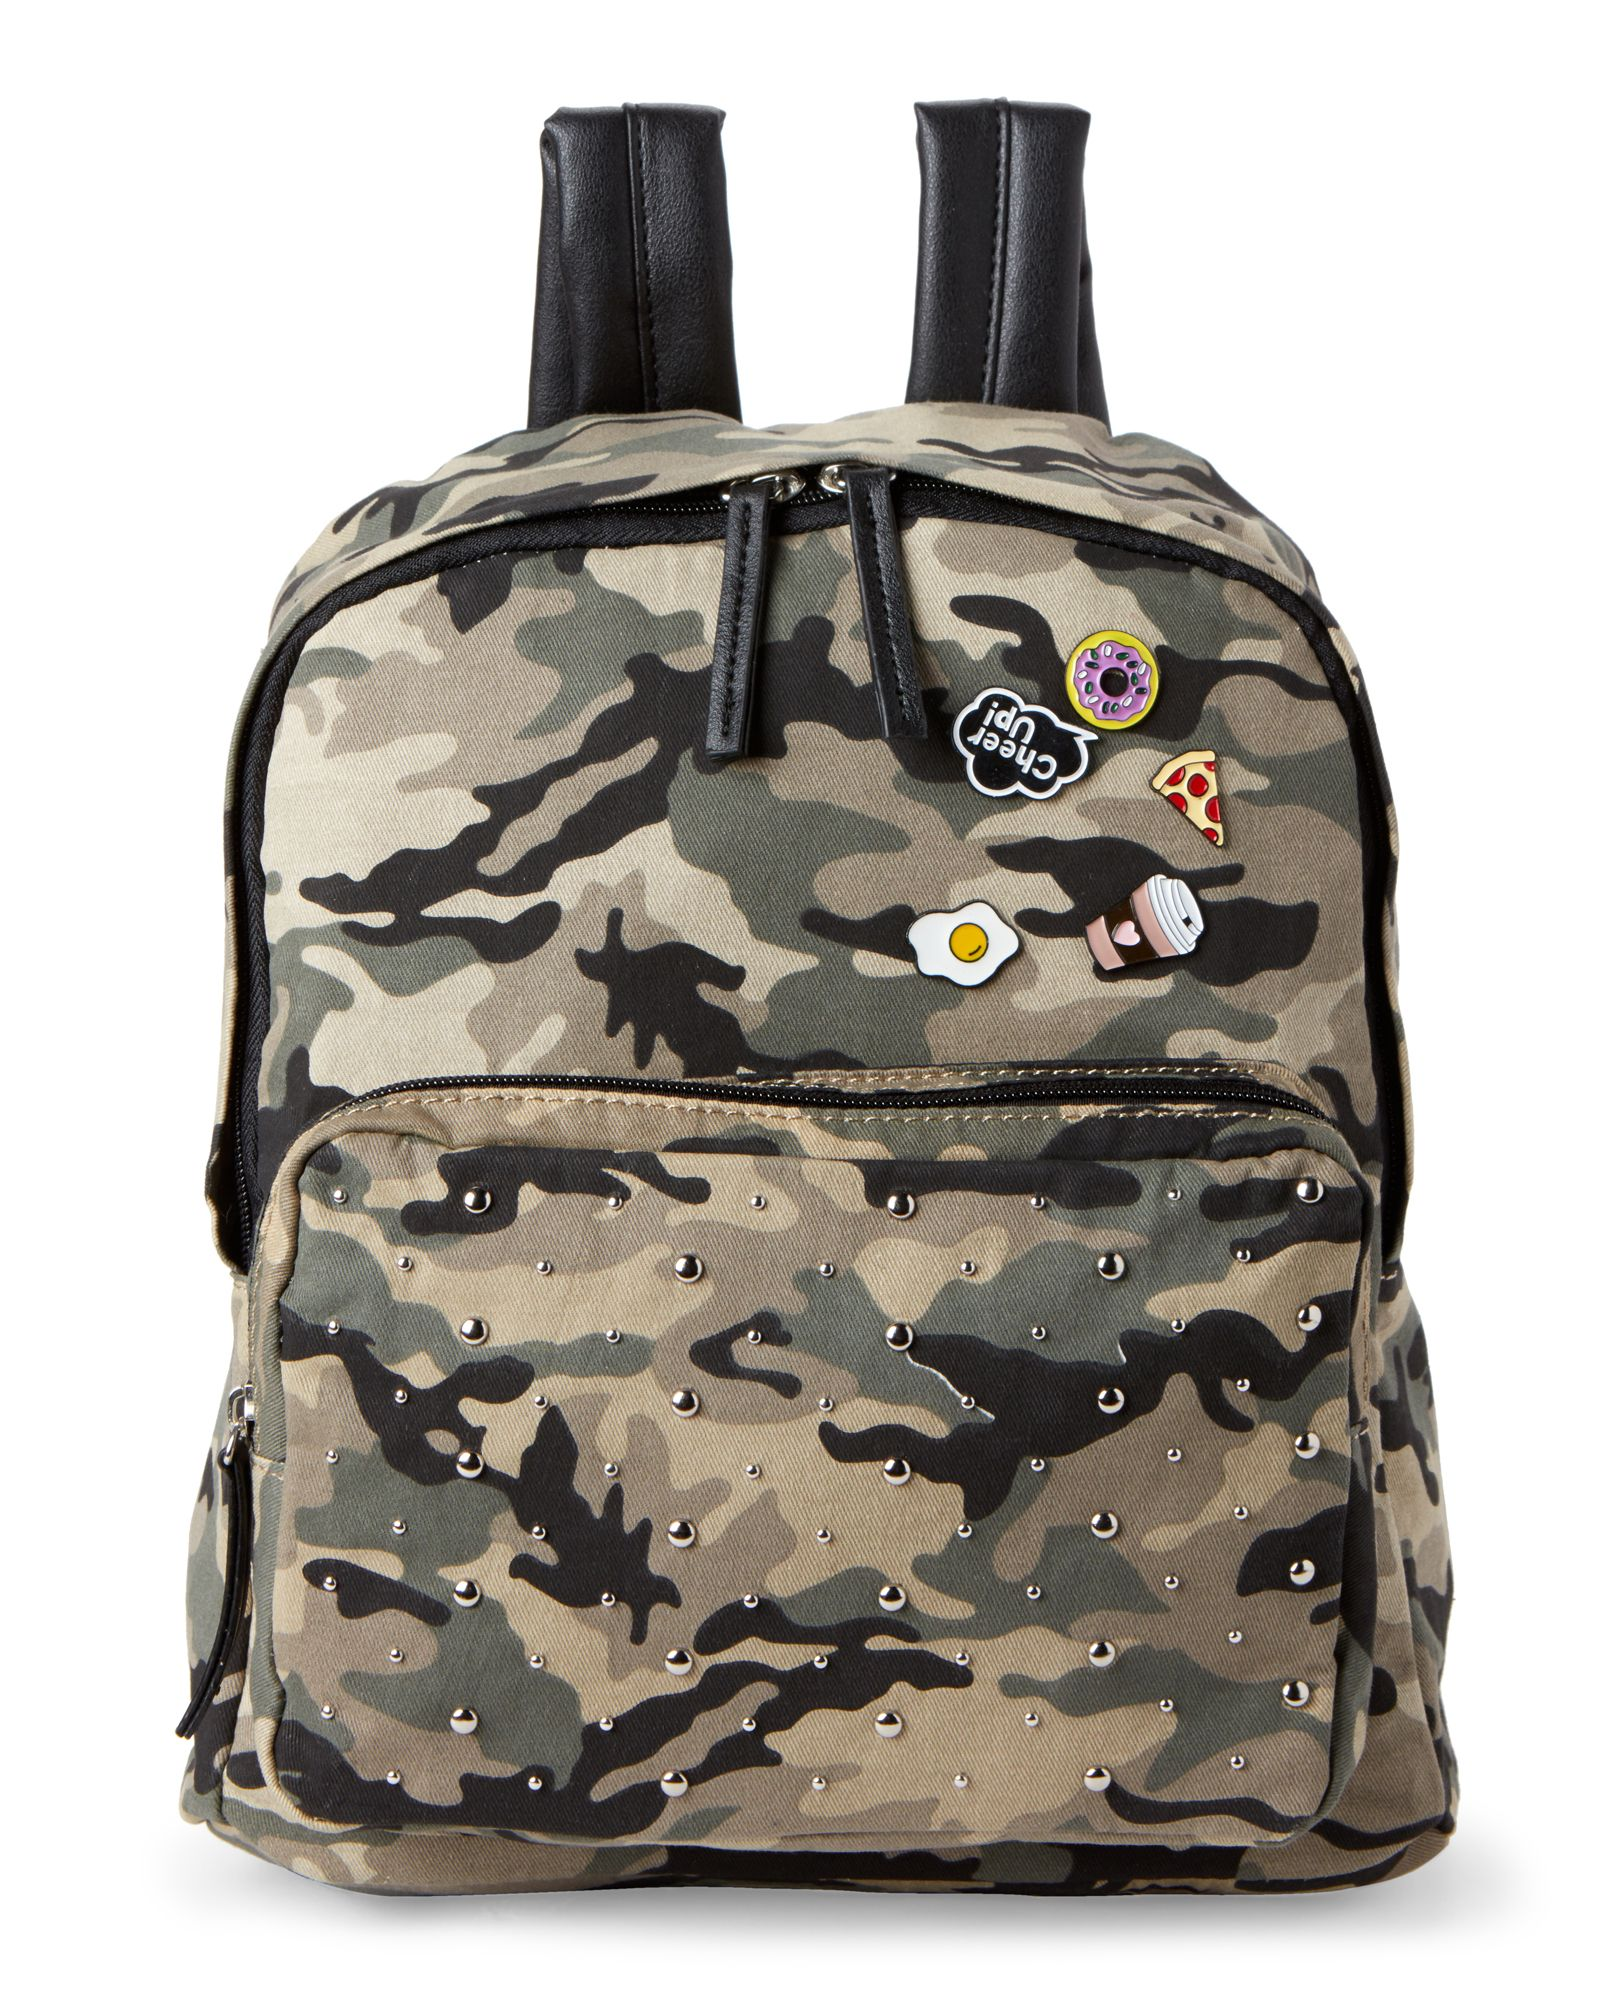 b56af8e0c2 Girls) Studded Camo Backpack in 2019 | *Apparel & Accessories ...